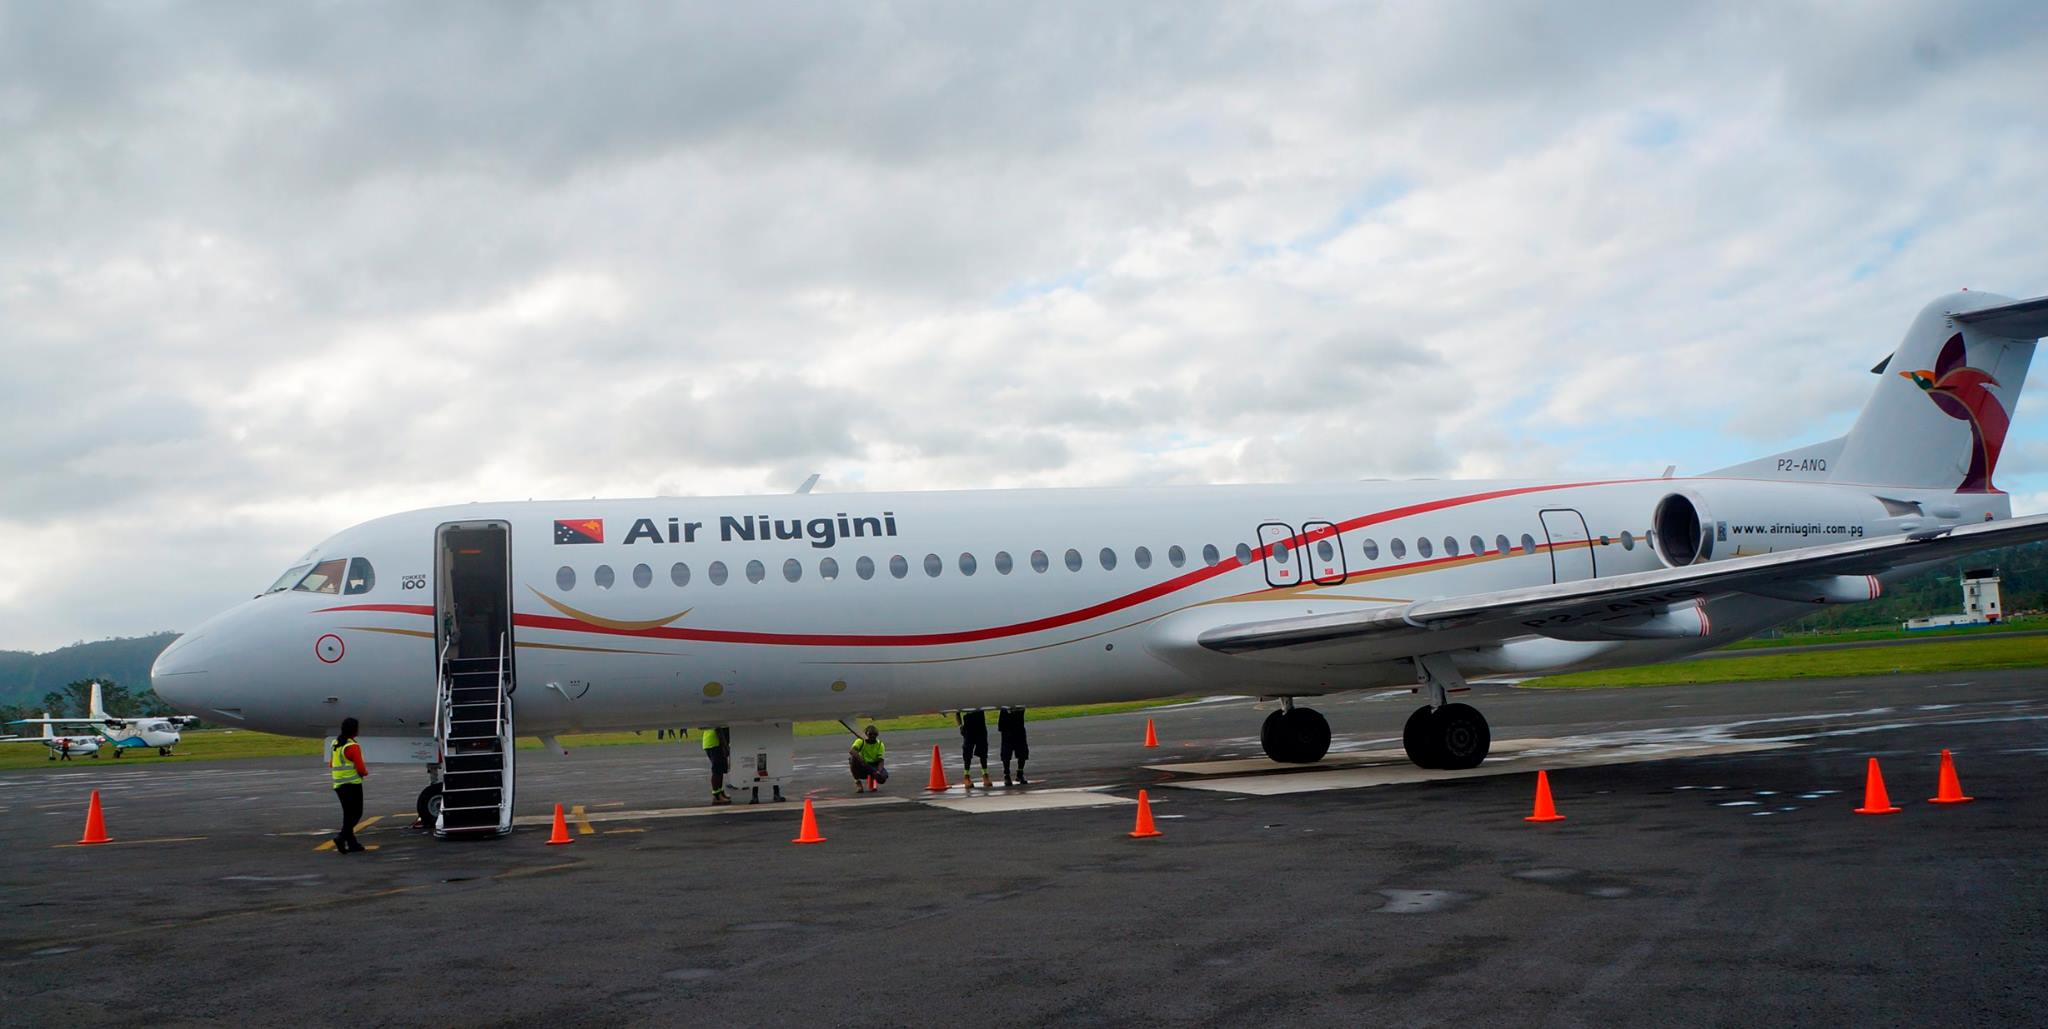 Air Niugini Operates First Commercial Service To Port Vila, Vanuatu